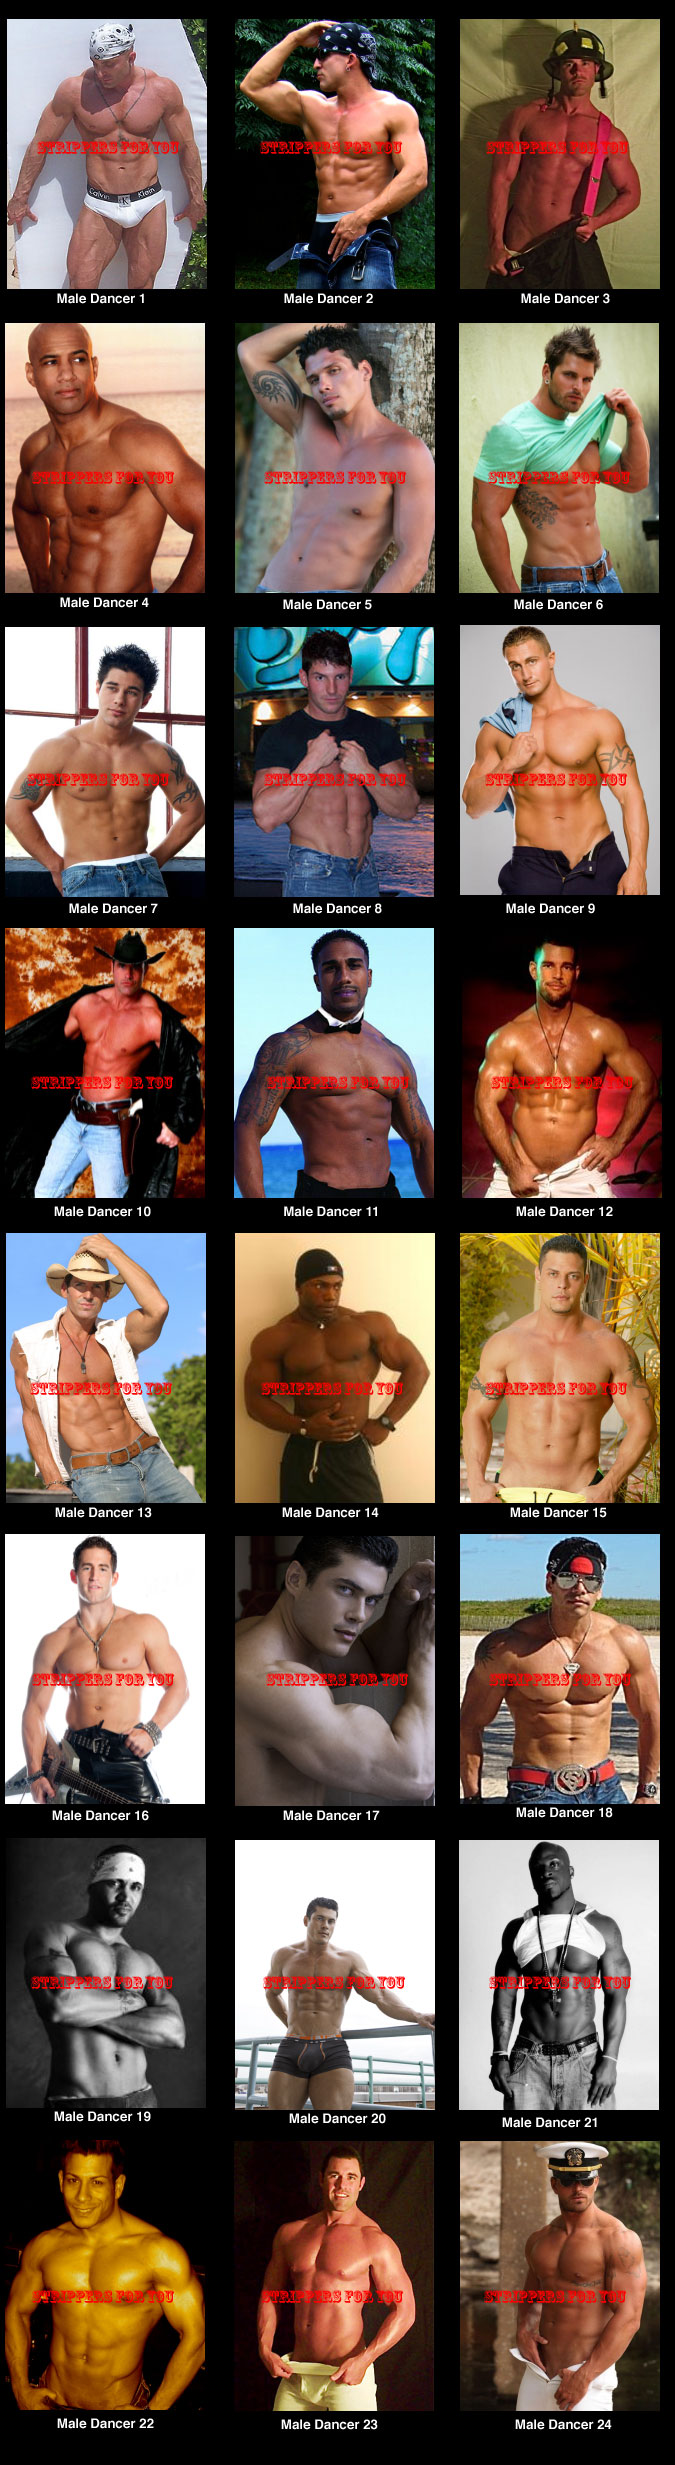 El Paso male strippers